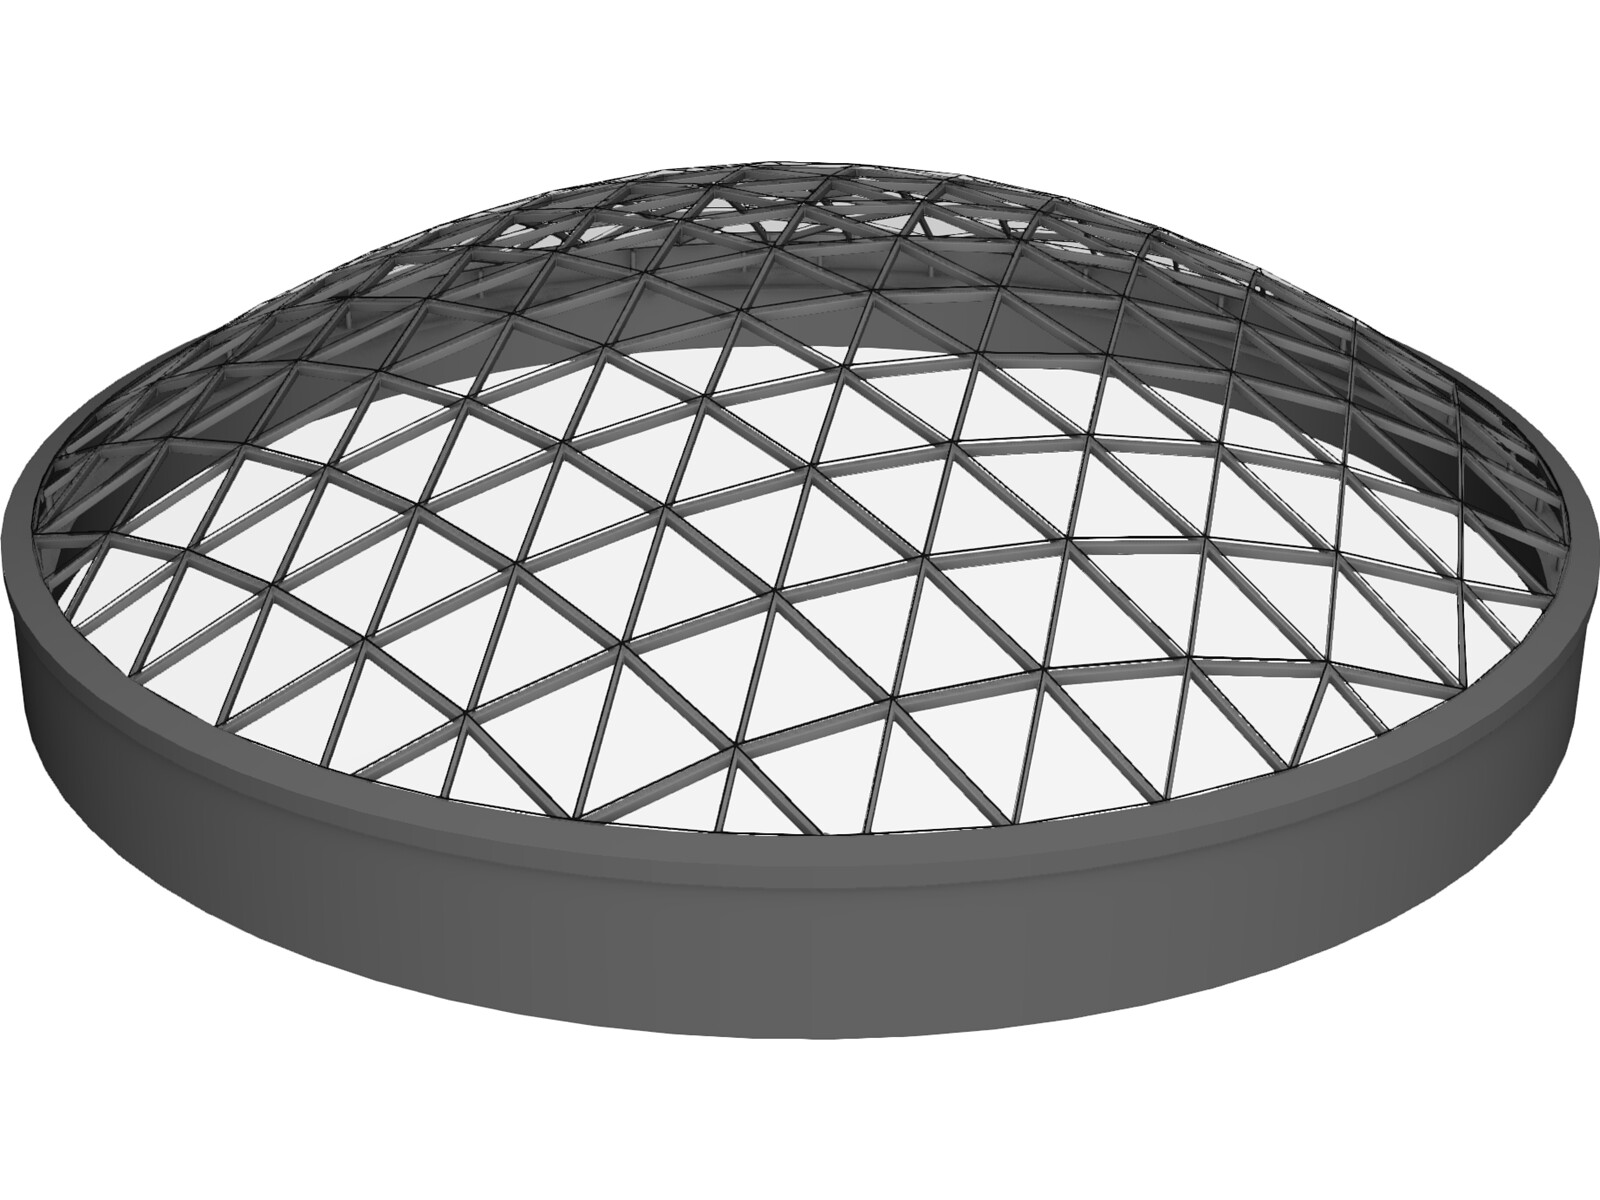 how to make a dome on 3ds